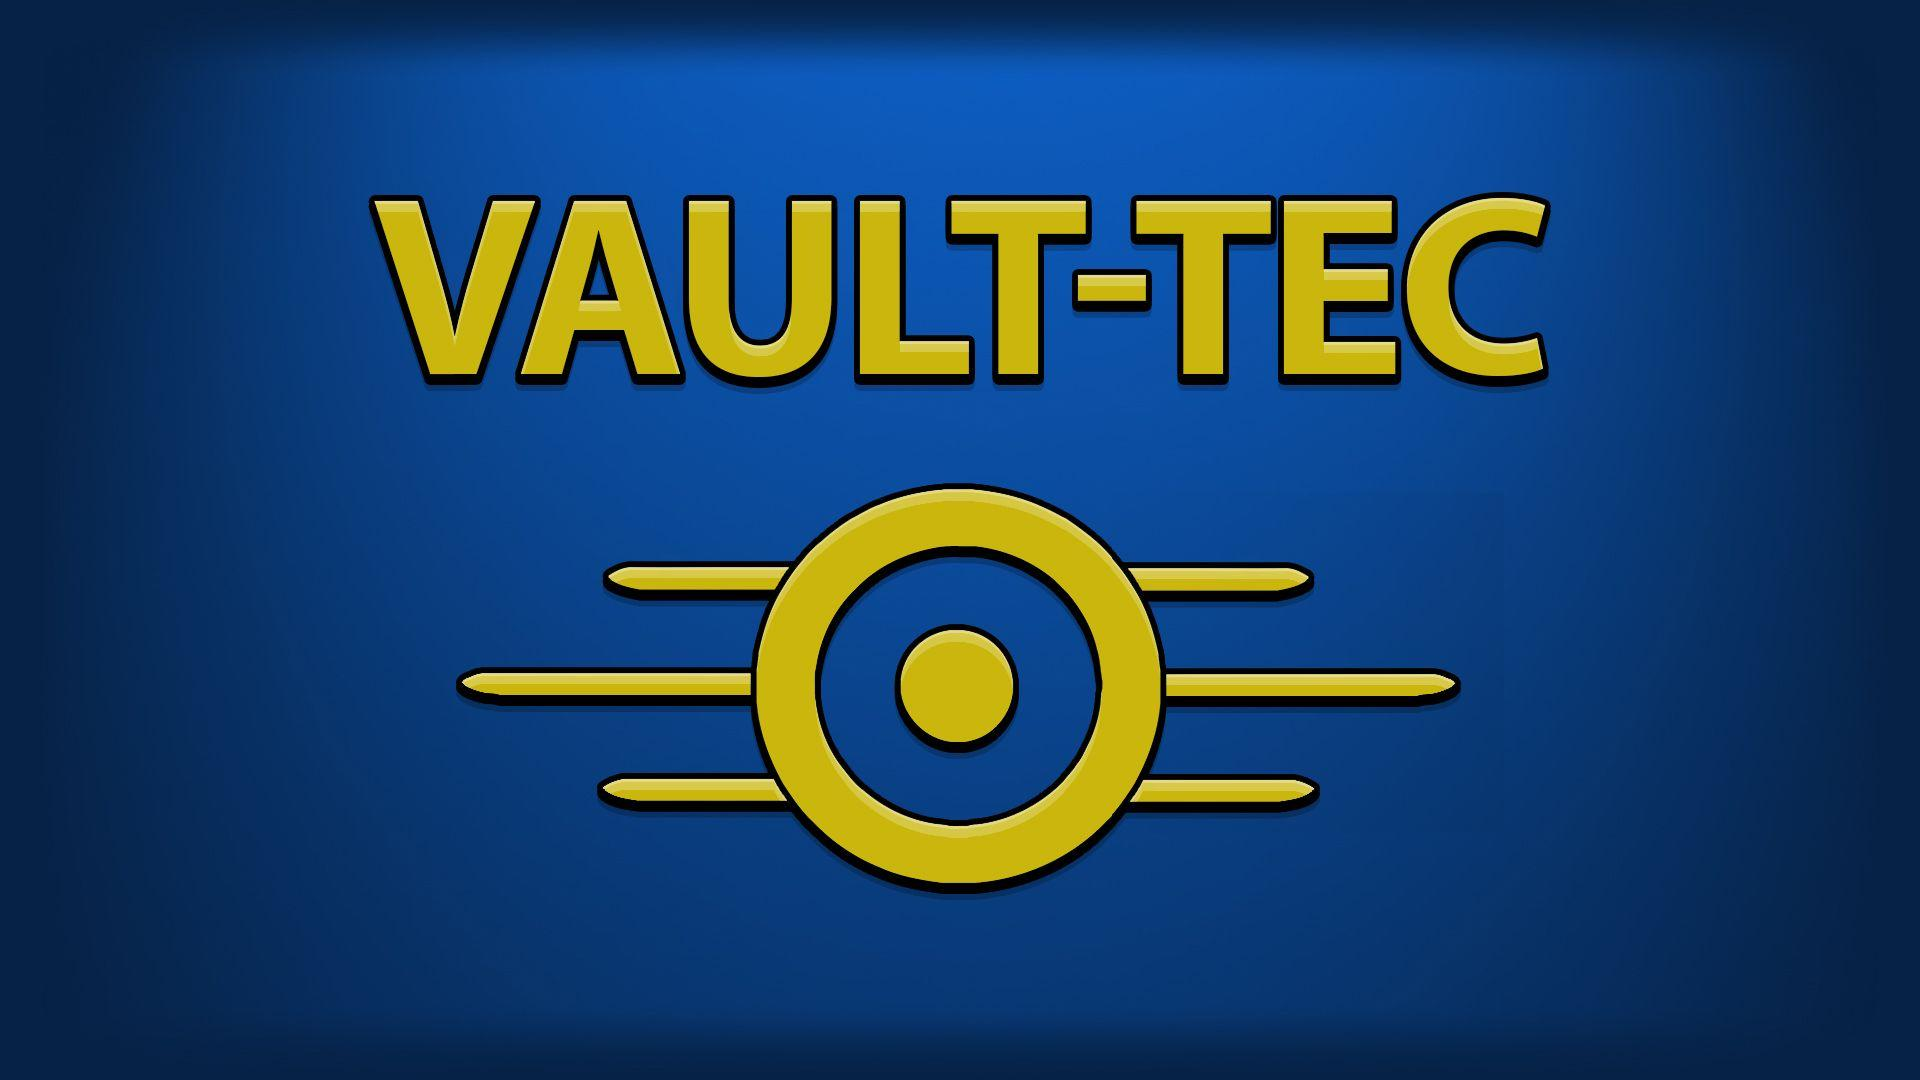 Vault Tec Wallpapers Wallpaper Cave